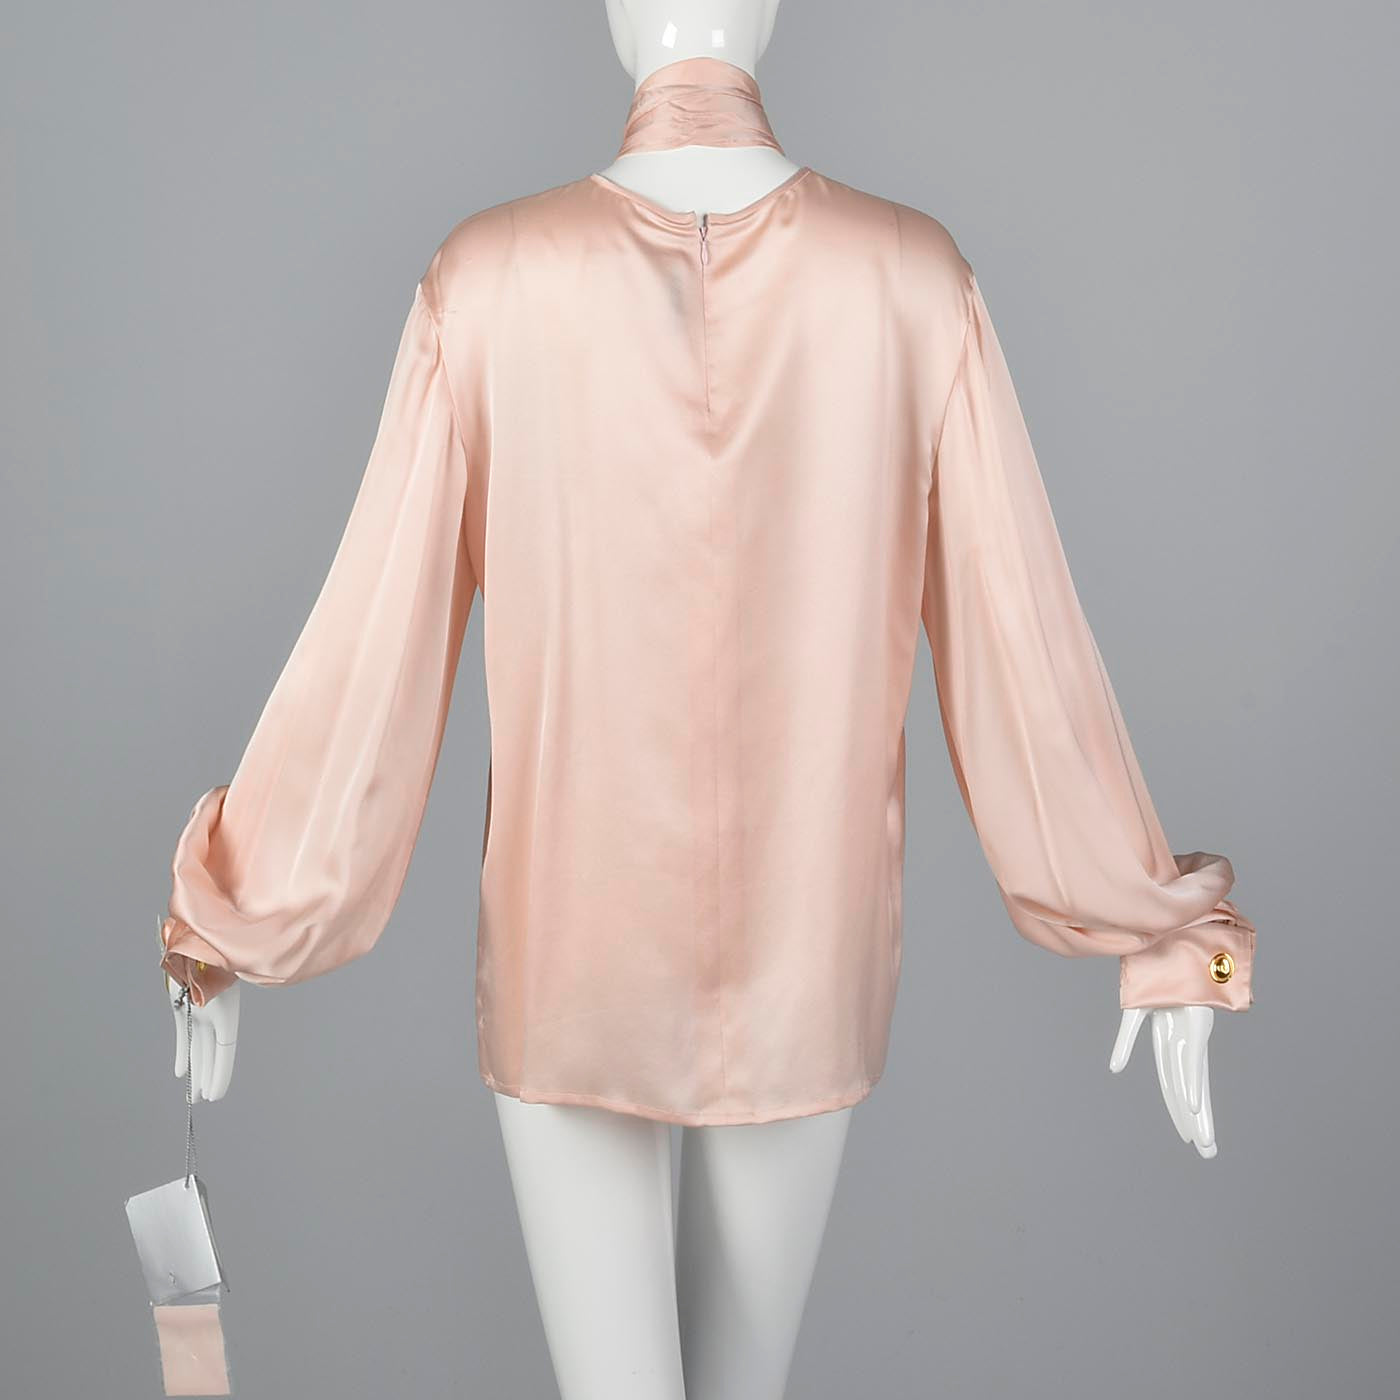 Christian Dior Boutique Numbered Pink Silk Blouse